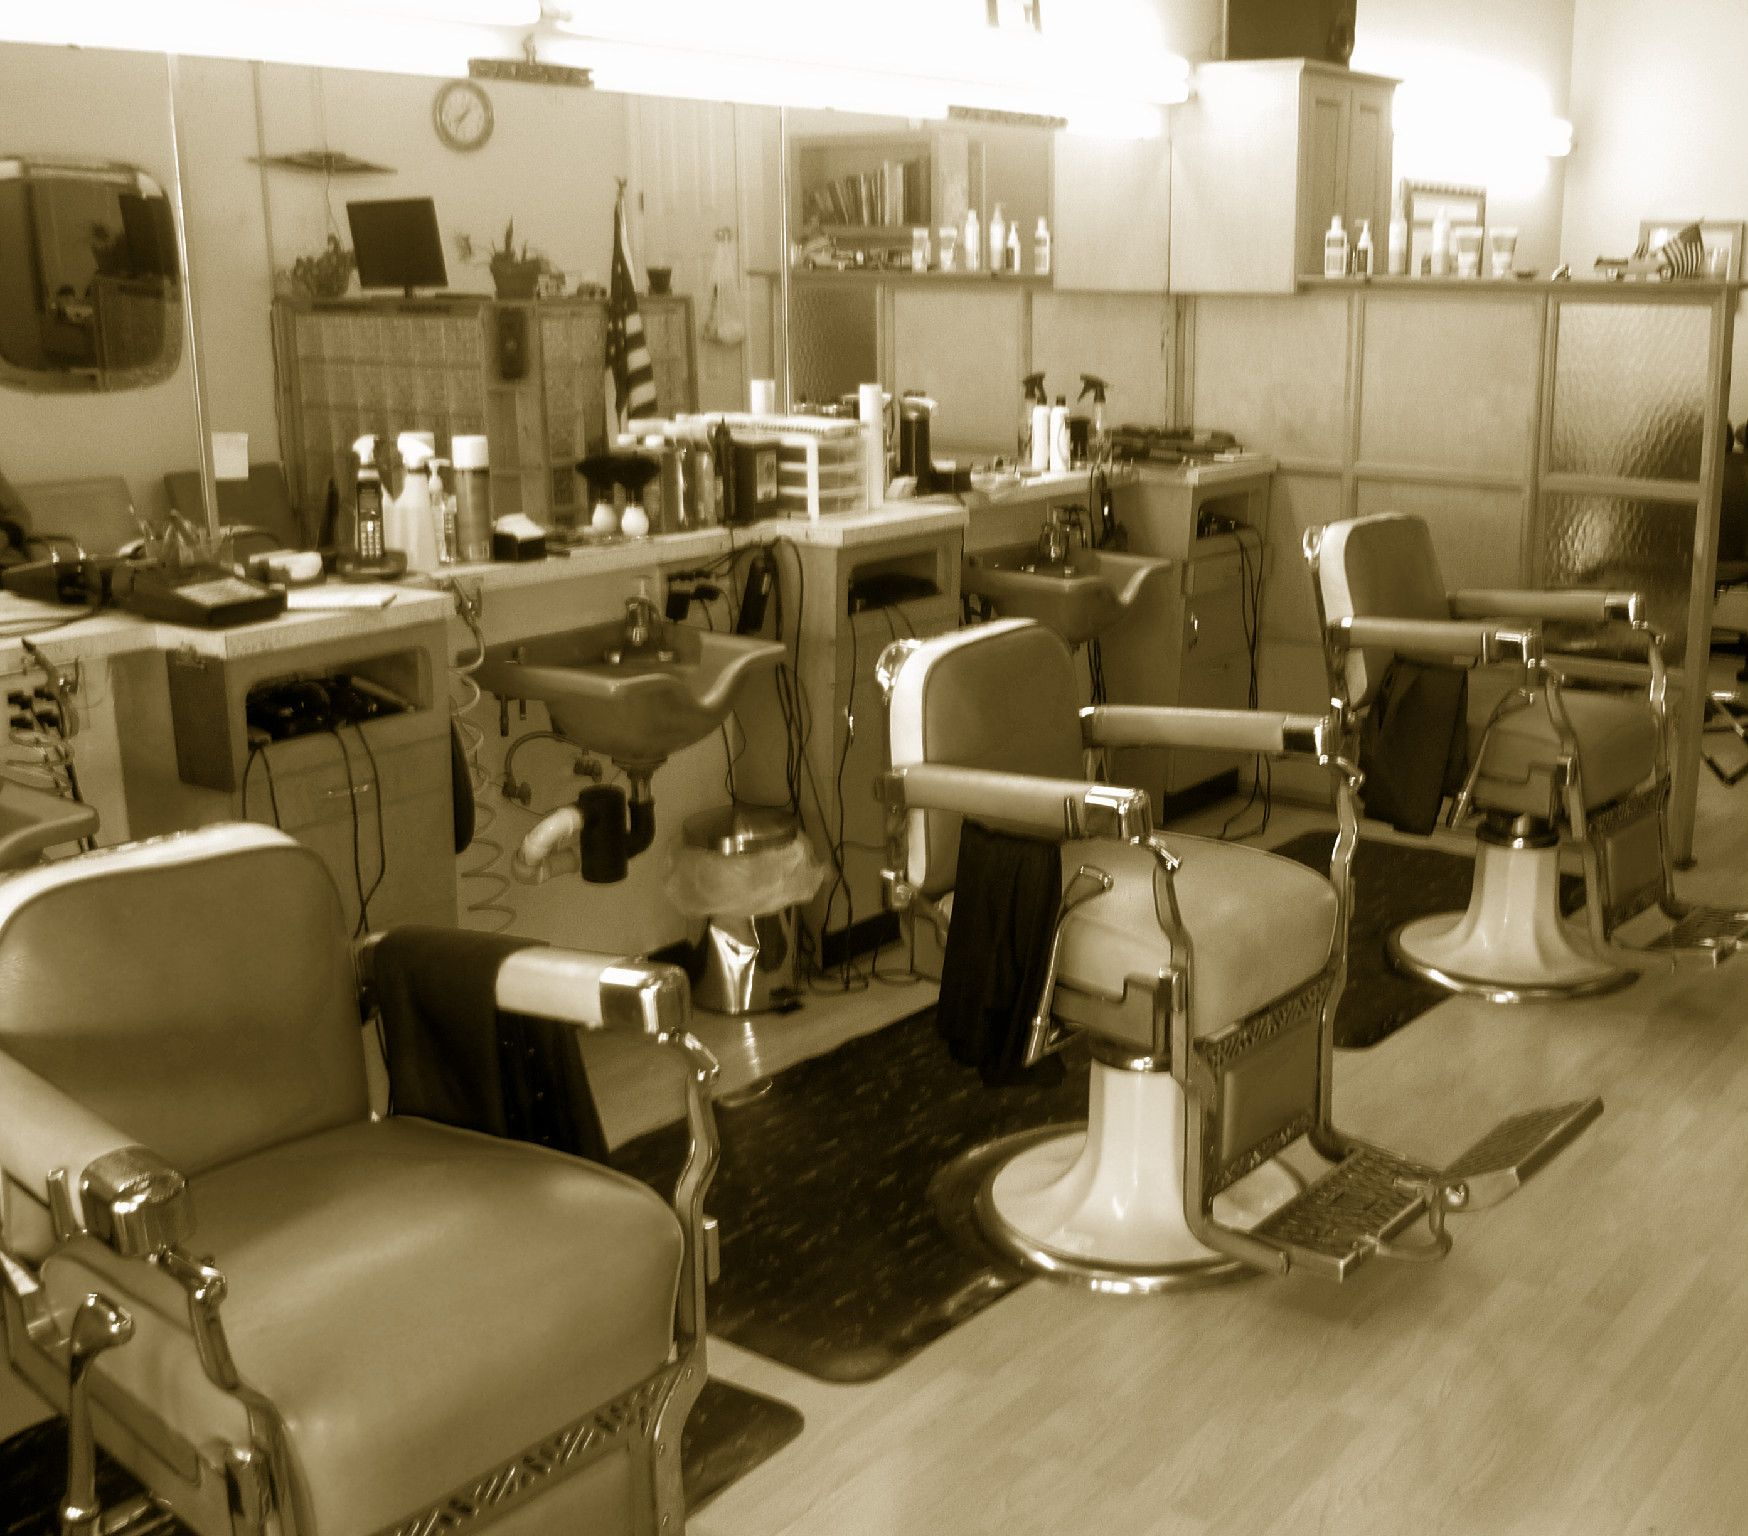 l 600—398 My Barber Shop Pinterest